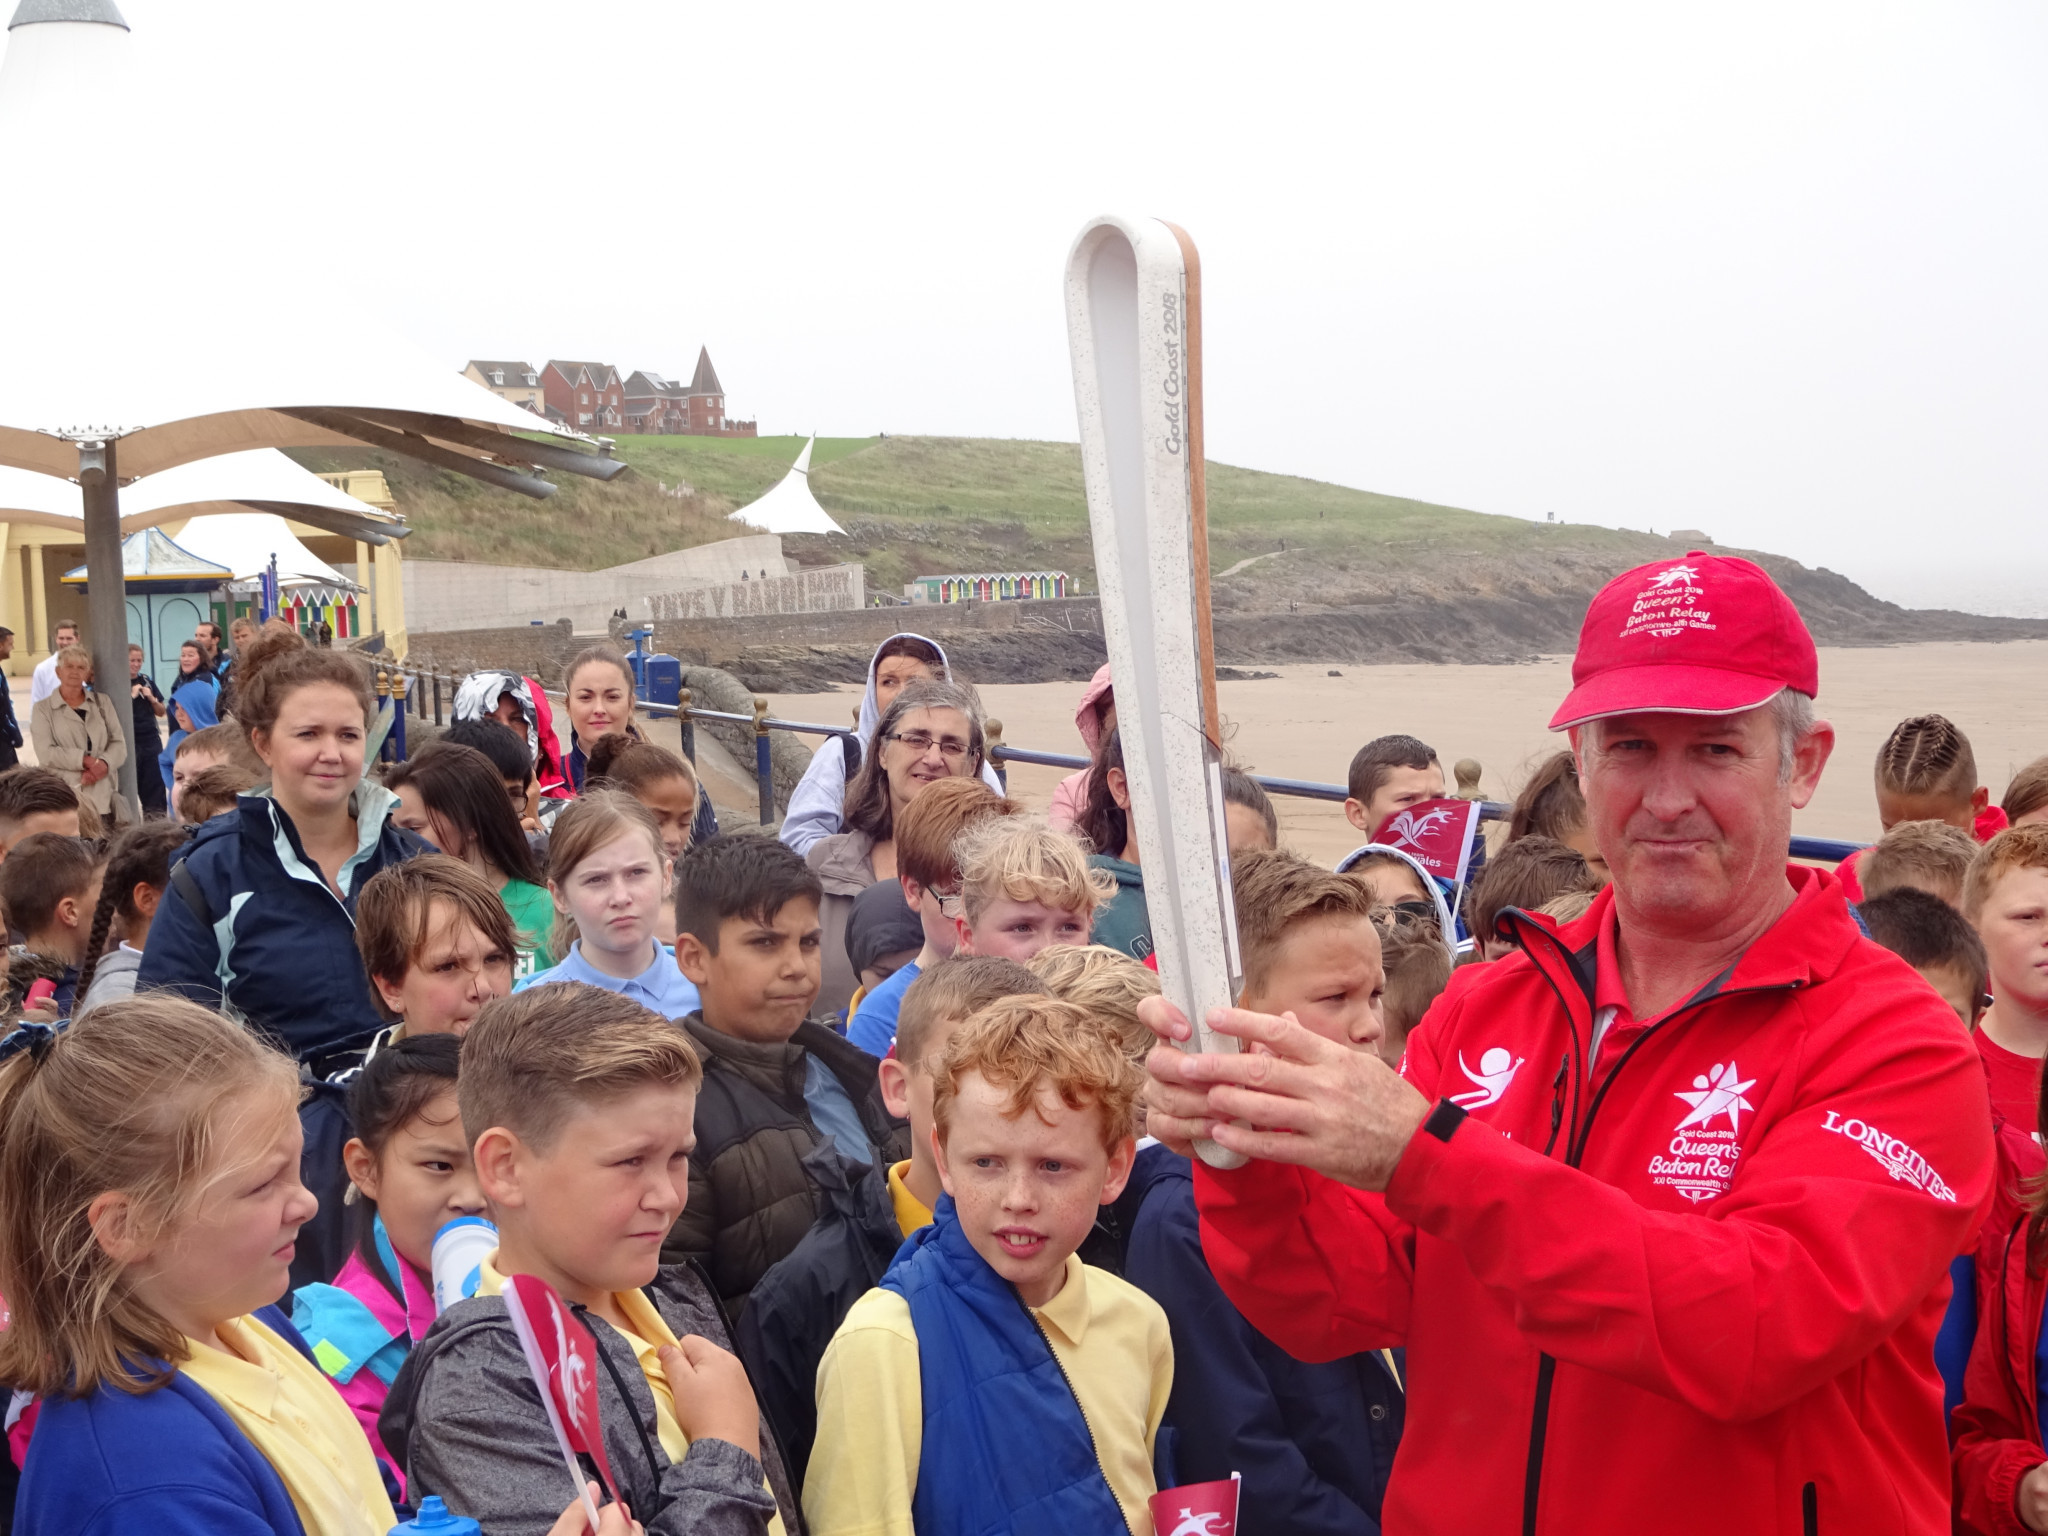 Children check out the Gold Coast 2018 Baton in Barry in Wales ©Philip Barker